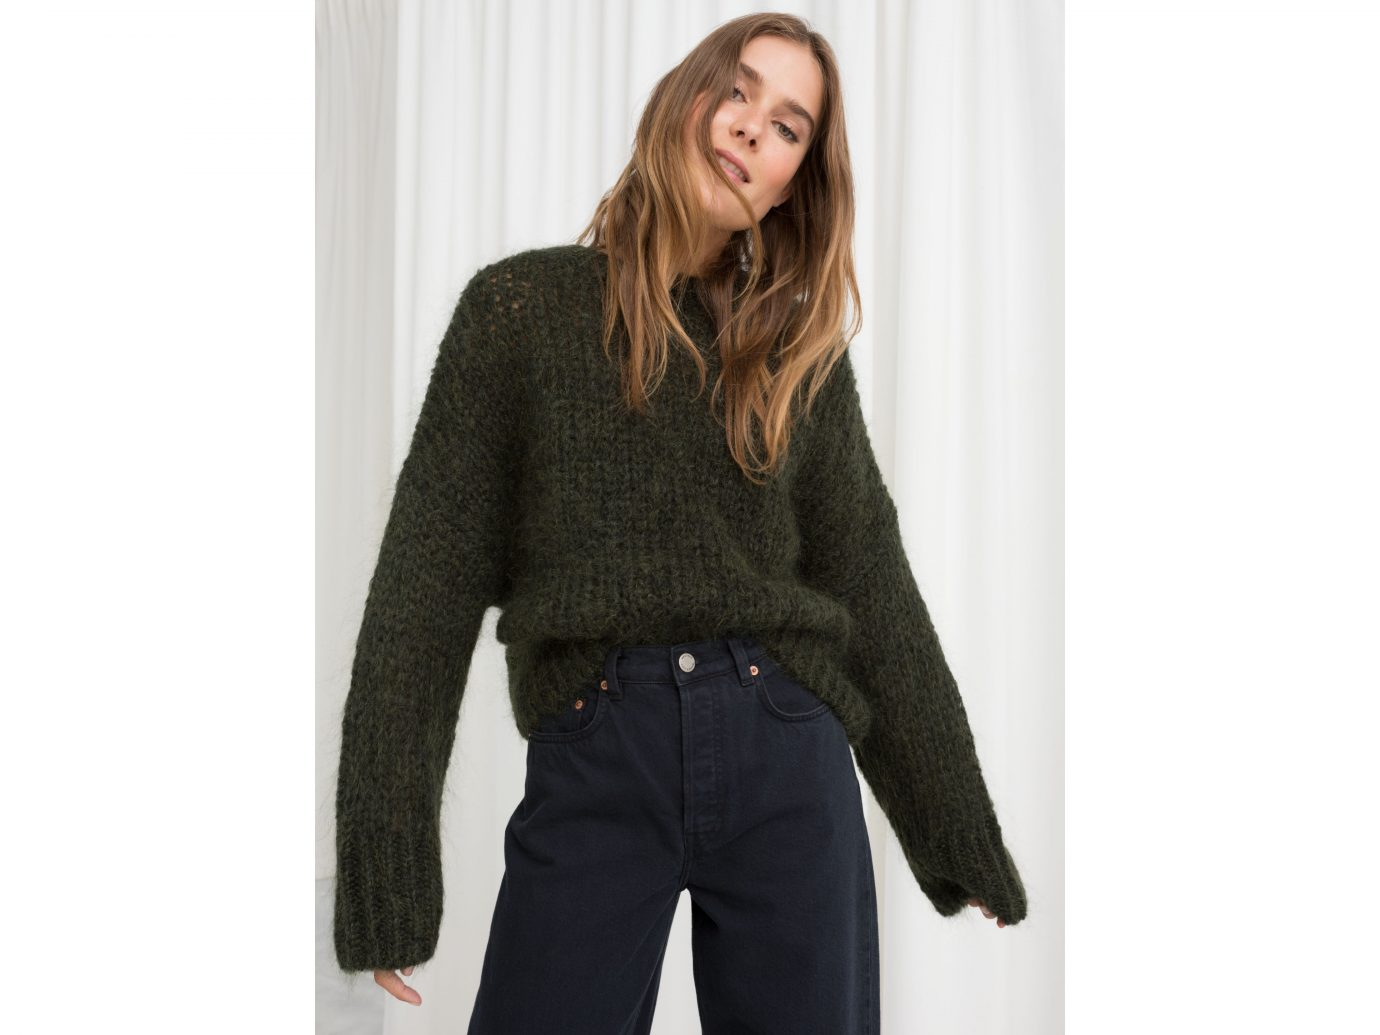 ddb46f472d8083 The Best Sweaters for Fall 2018: We Can't Wait to Get Cozy | Jetsetter